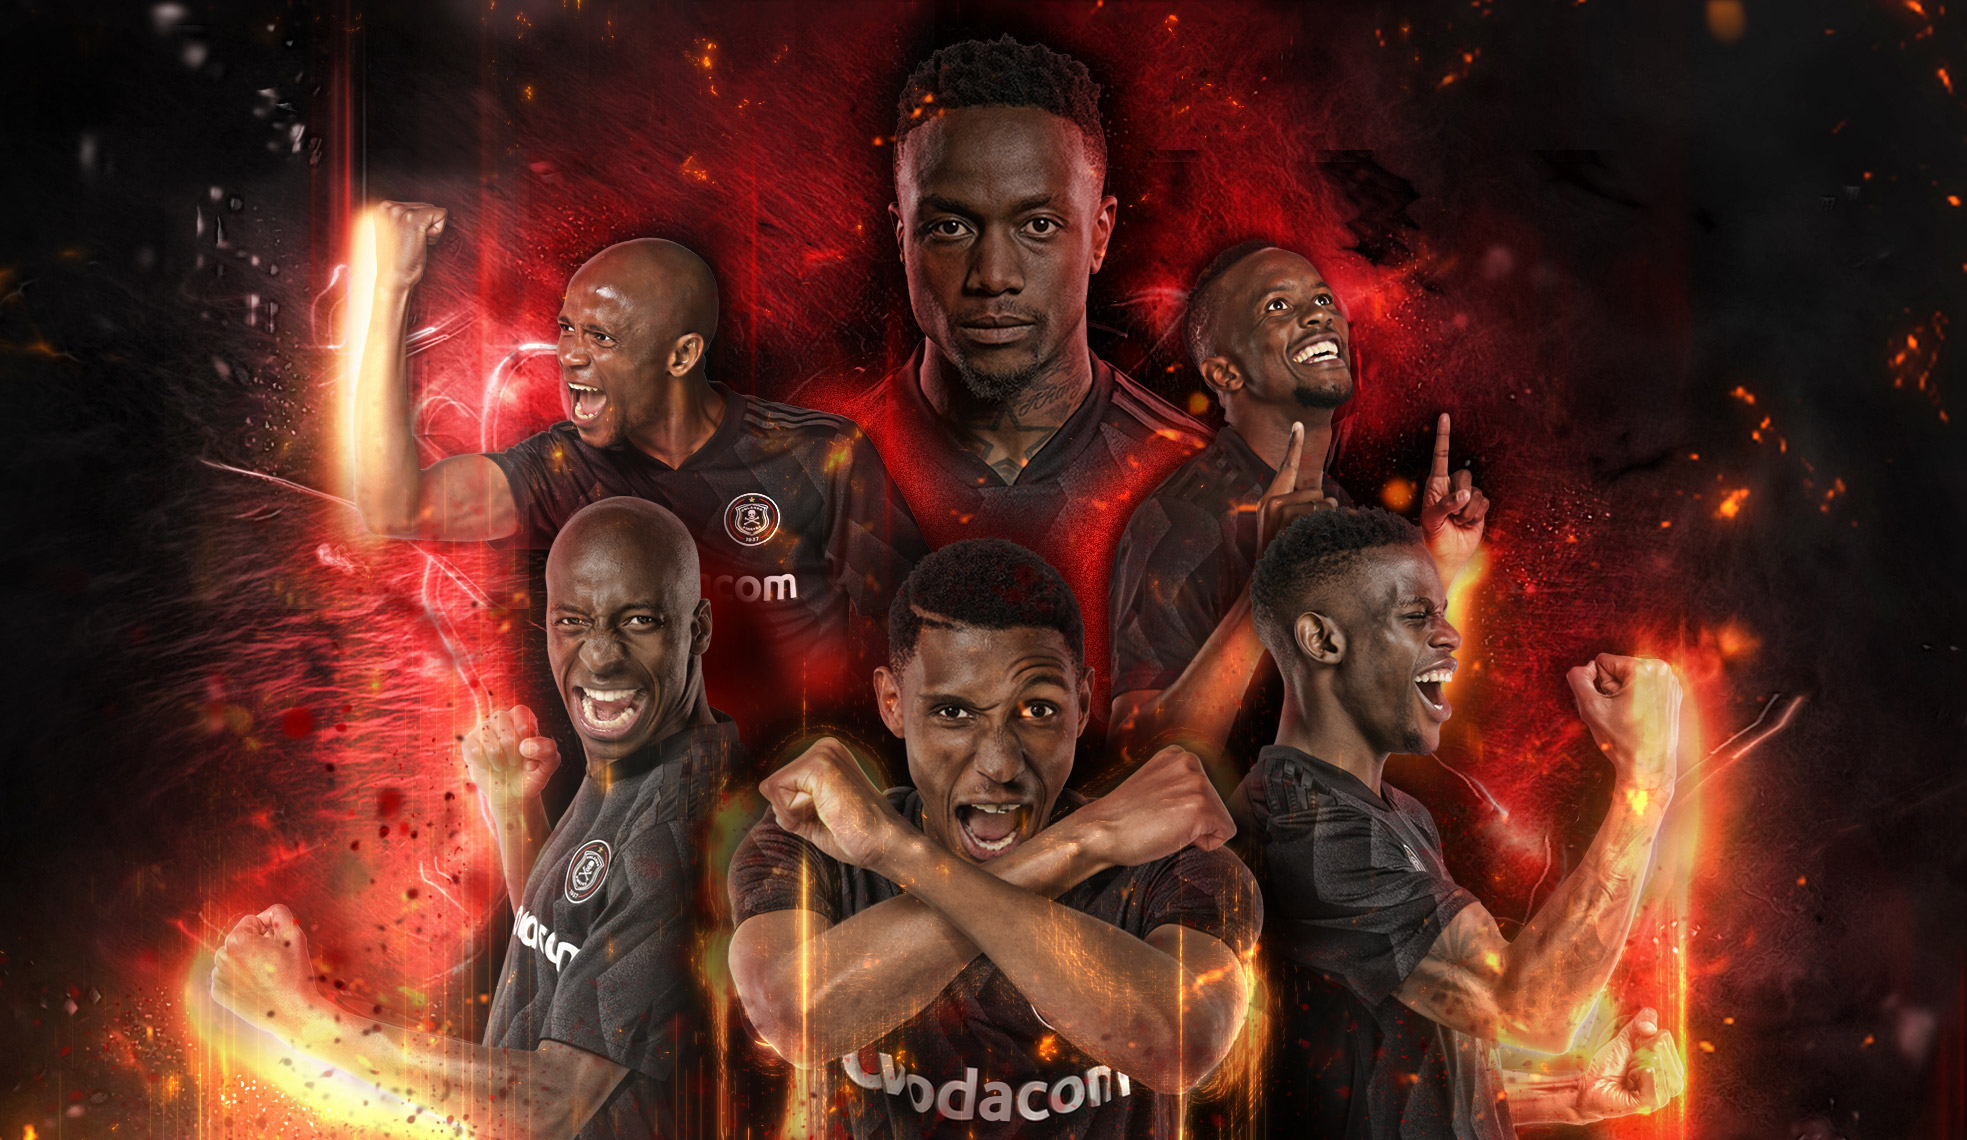 orlando pirates fc soccer composition brandon barnard photography